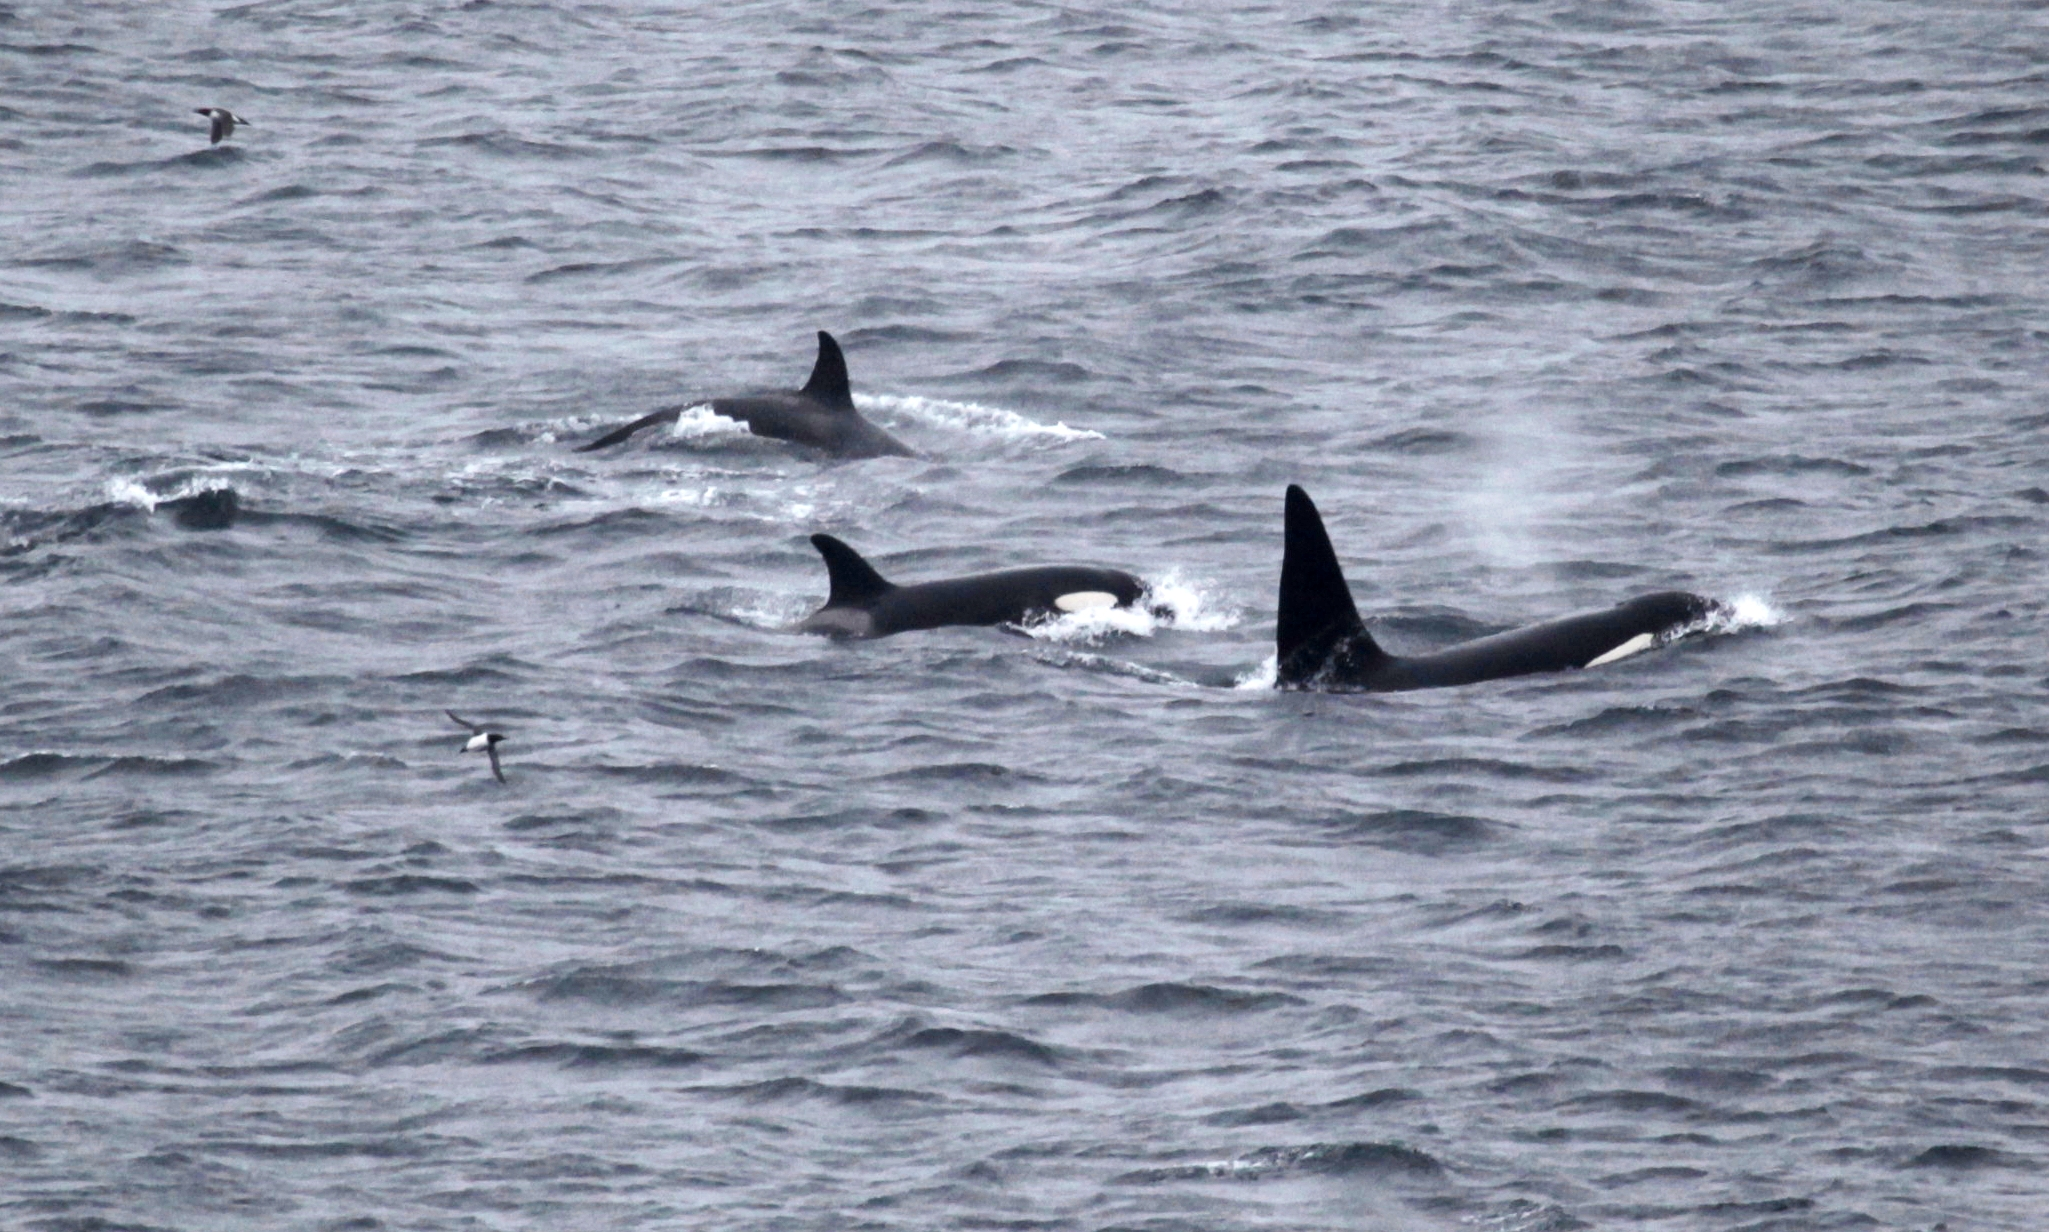 Killer whales photographed from the land during Orca Watch. Photo by Colin Bird/ Sea Watch Foundation